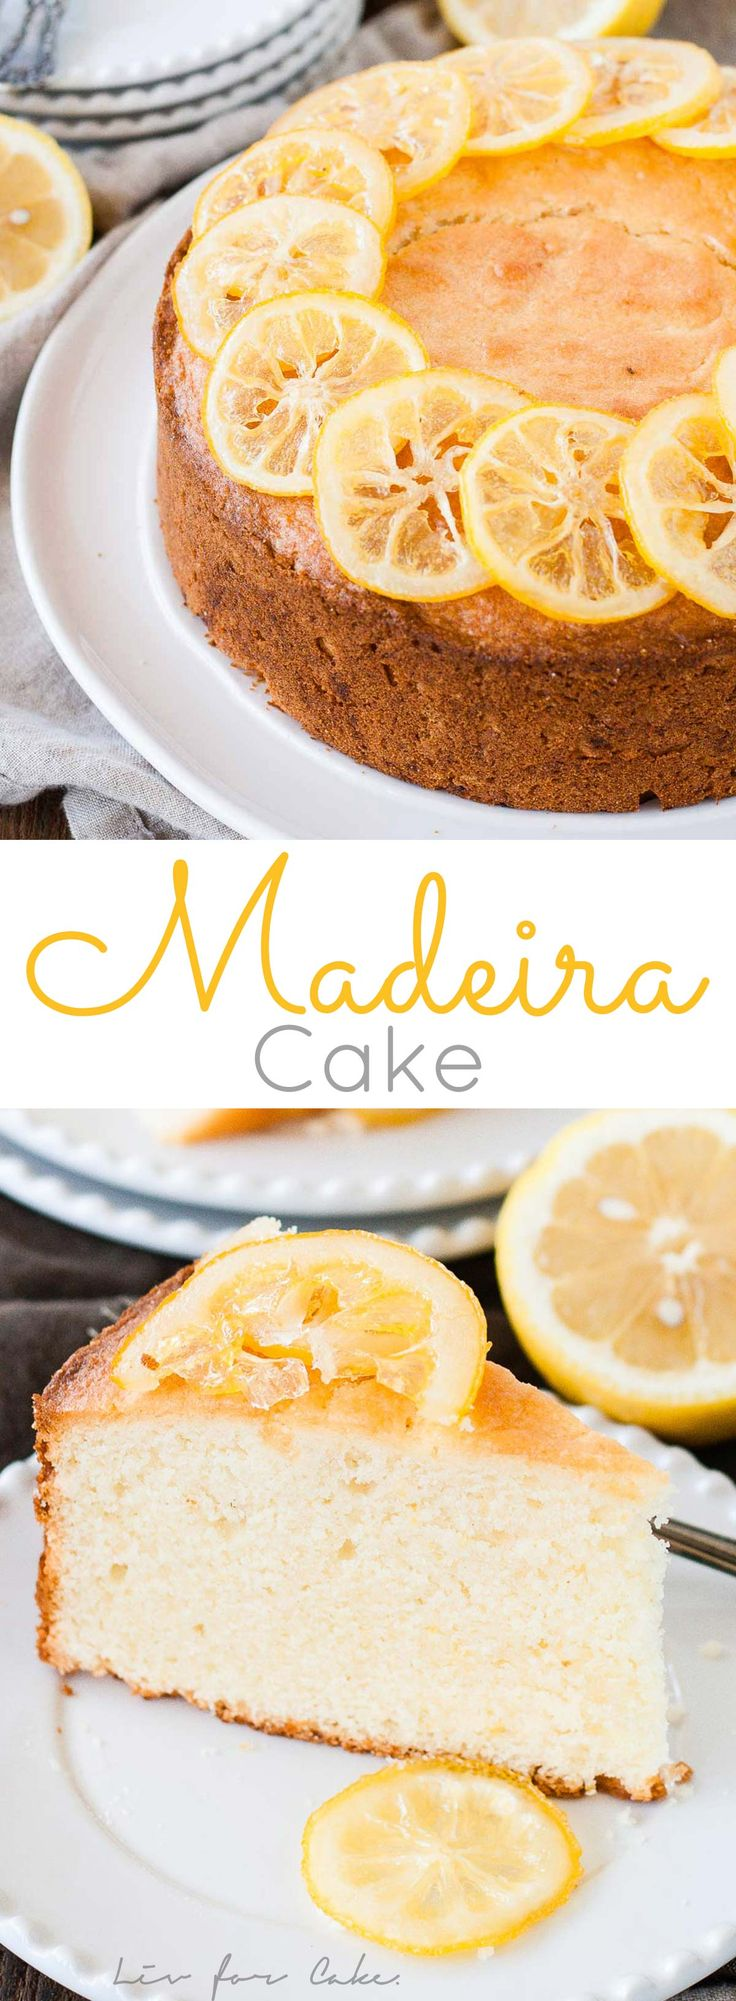 This classic English Madeira Cake is the easiest dessert you will ever make. Lightly flavoured with lemon and topped with candied lemon slices. | livforcake.com